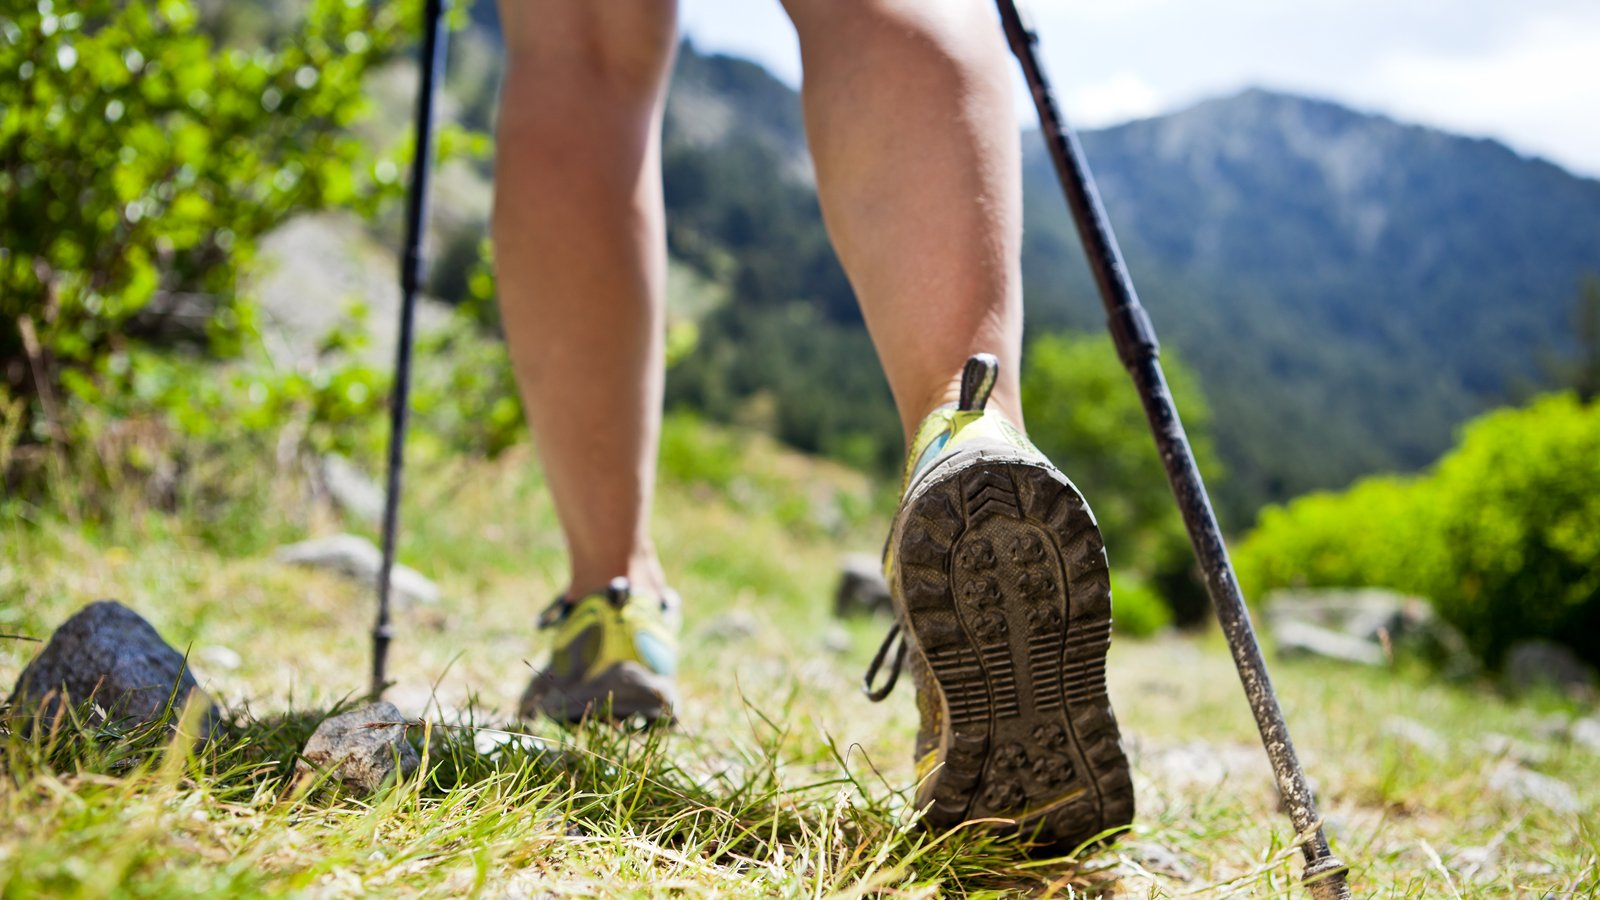 Have you ever wanted to try Nordic Walking?